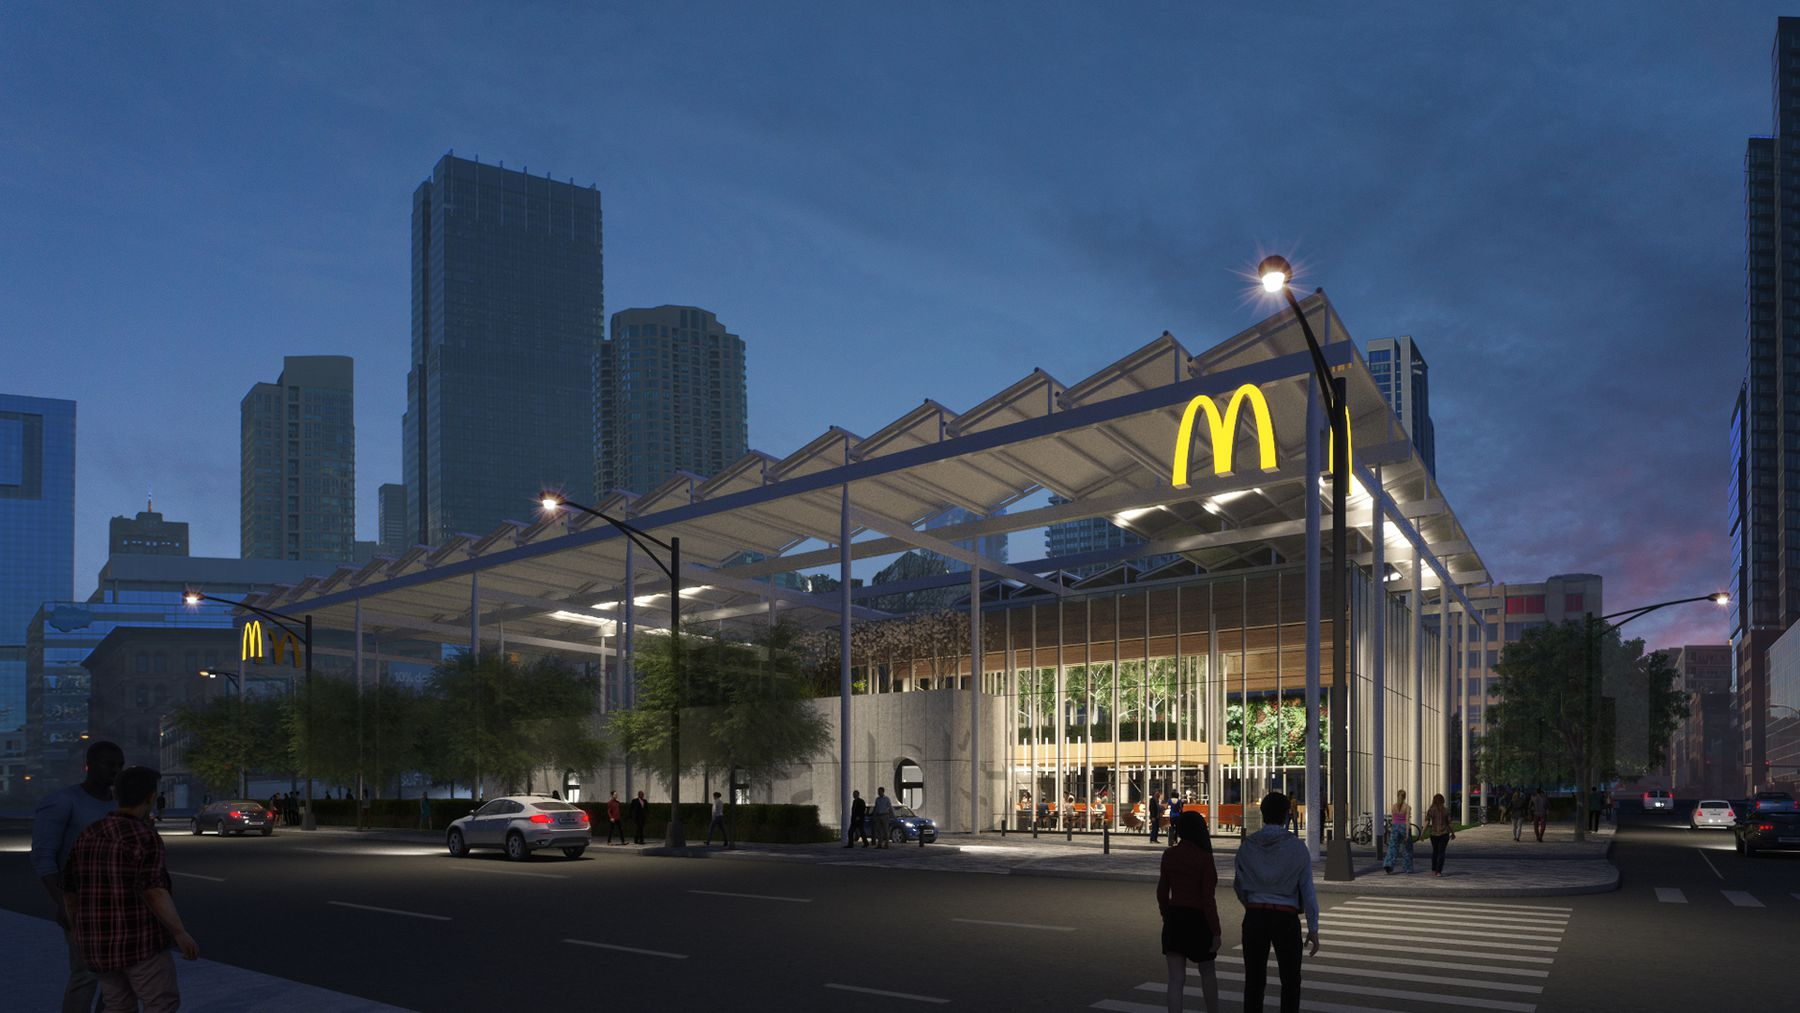 Rendering of McDonald's new River North location designed by Carol Ross Barney. (Source: McDonald's)